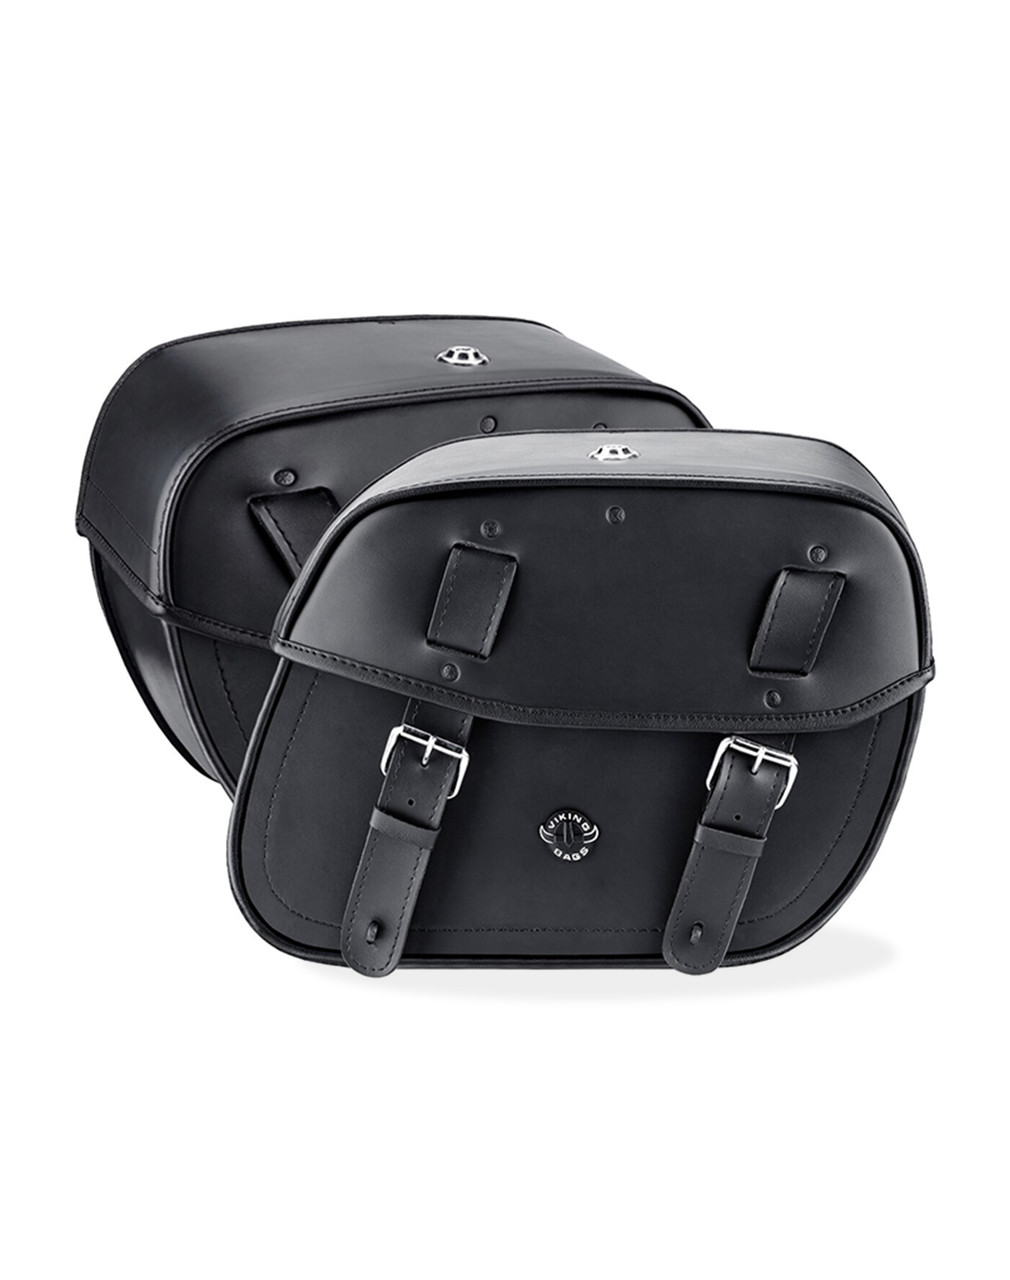 VikingBags Specific Medium Double Strap Shock Cutout Motorcycle Saddlebags For Harley Dyna Switchback Both Bags View